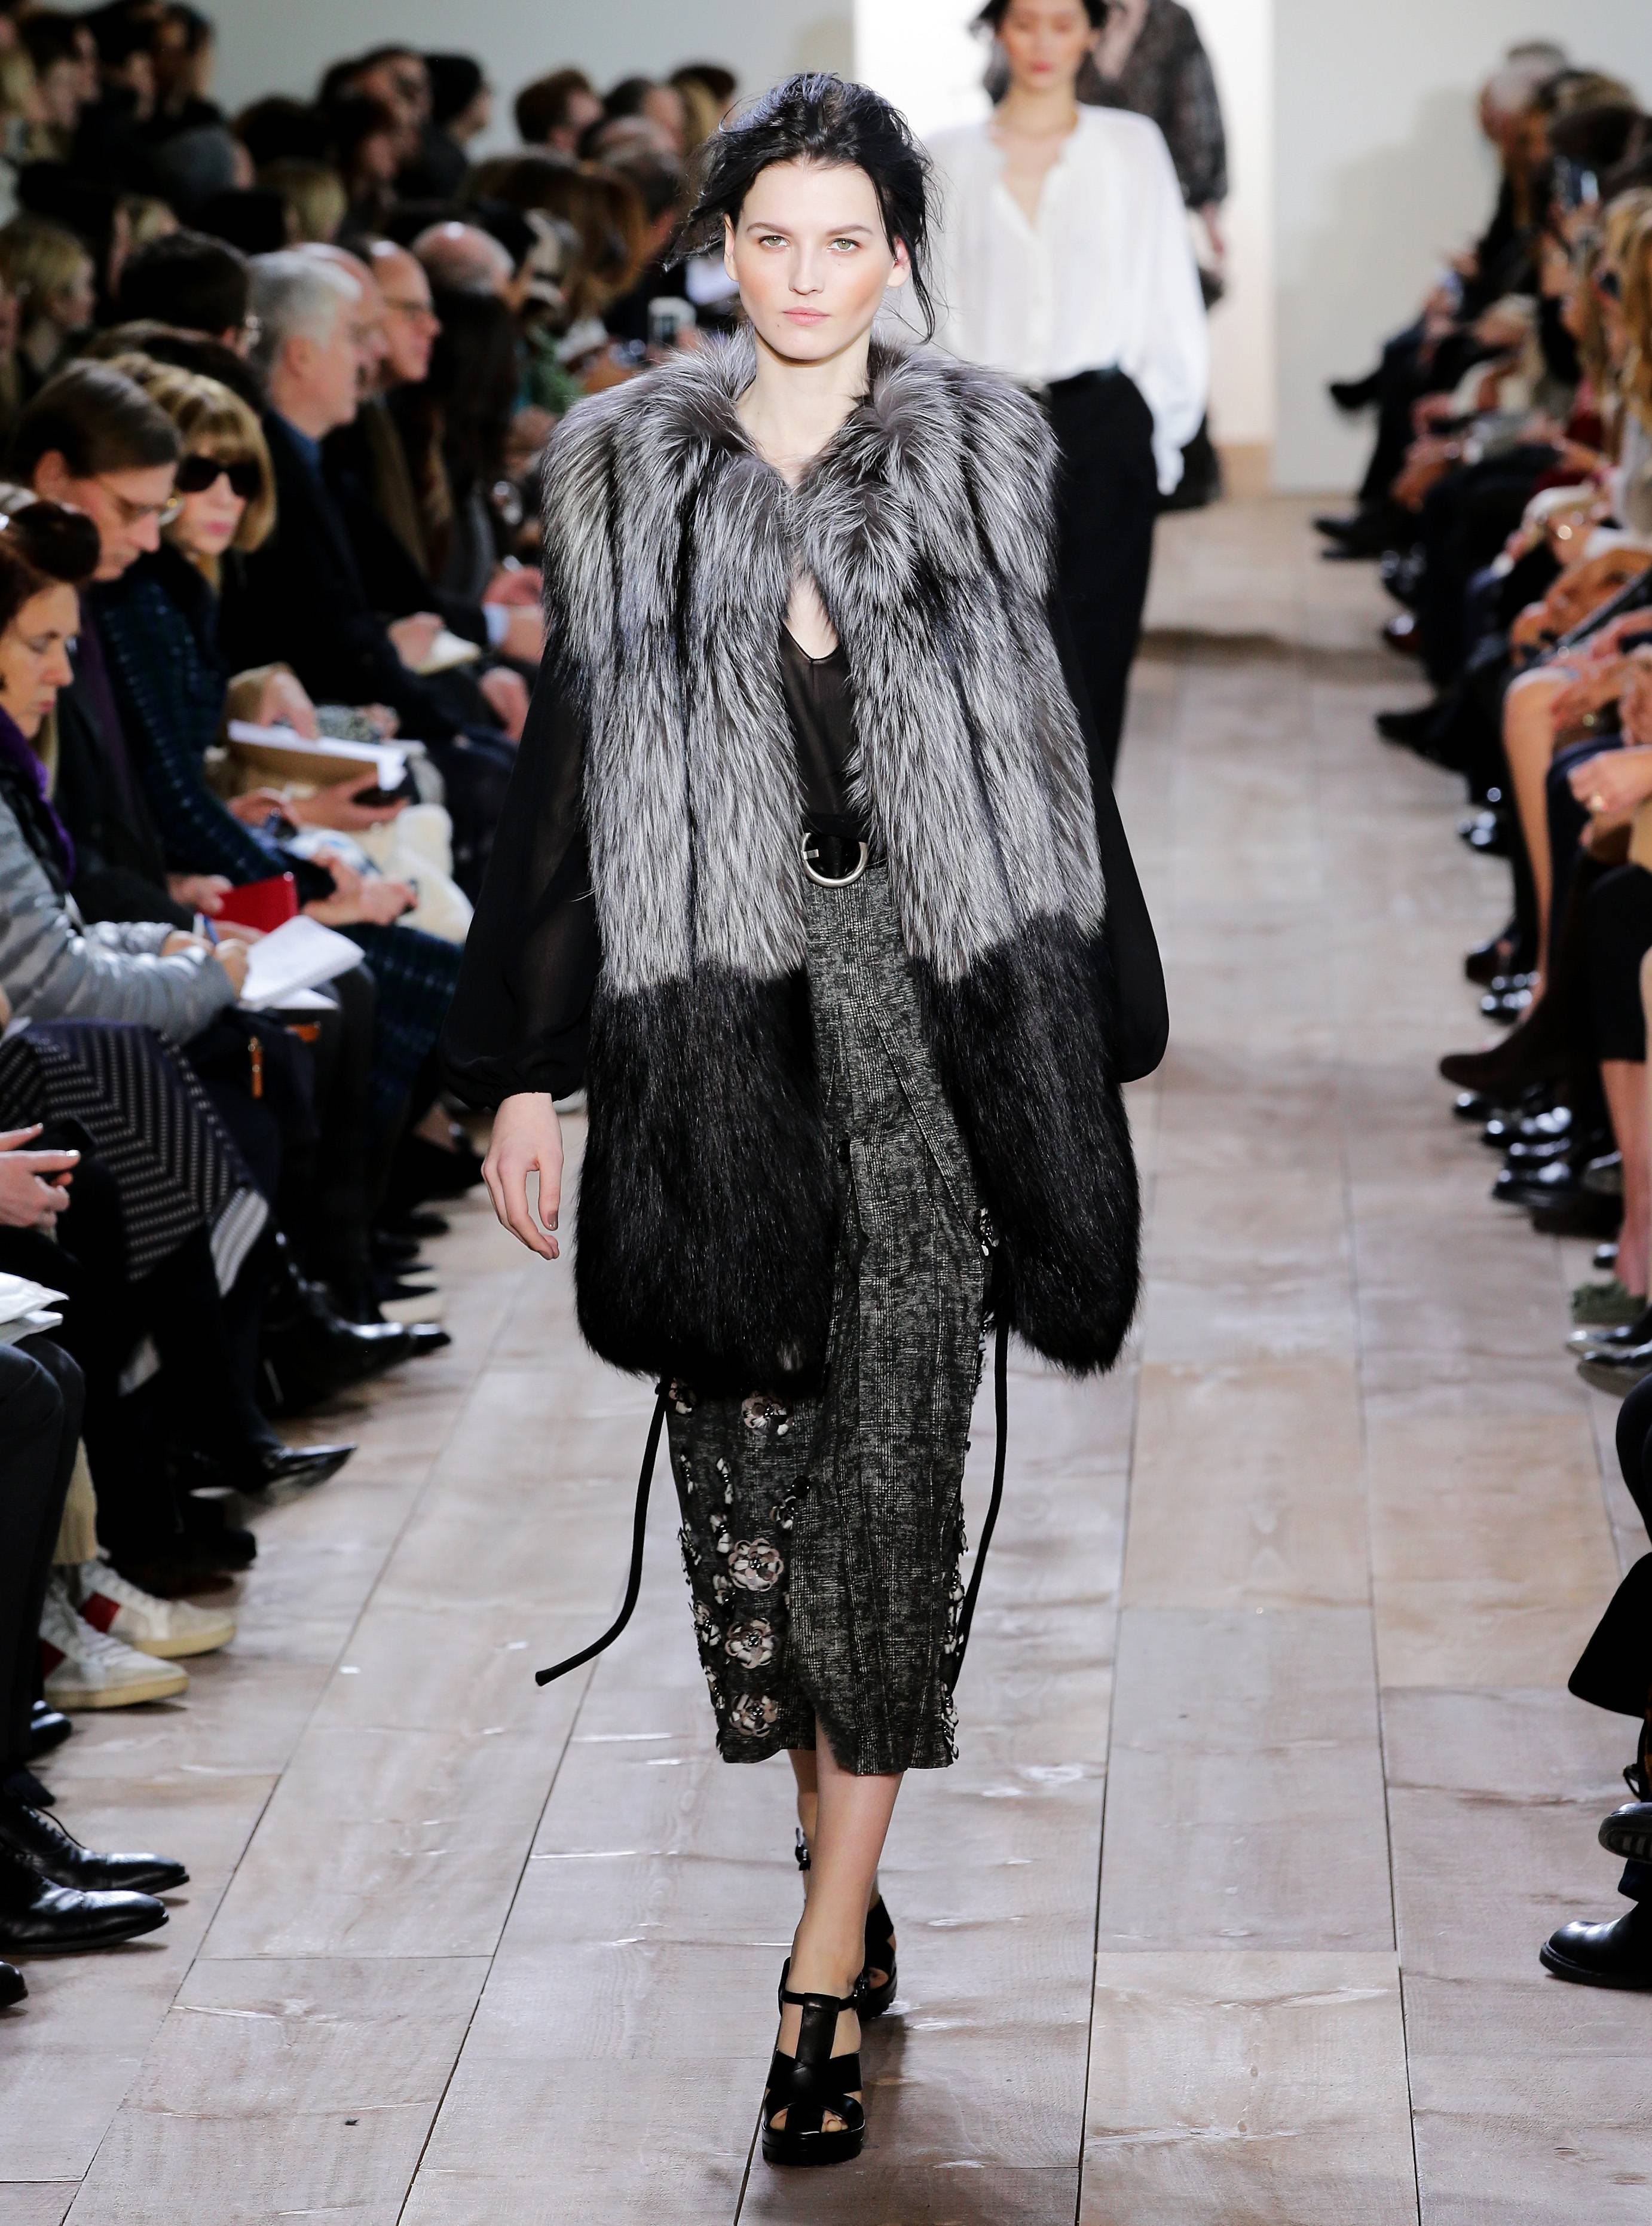 Michael Kors - Runway - Mercedes-Benz Fashion Week Fall 2014